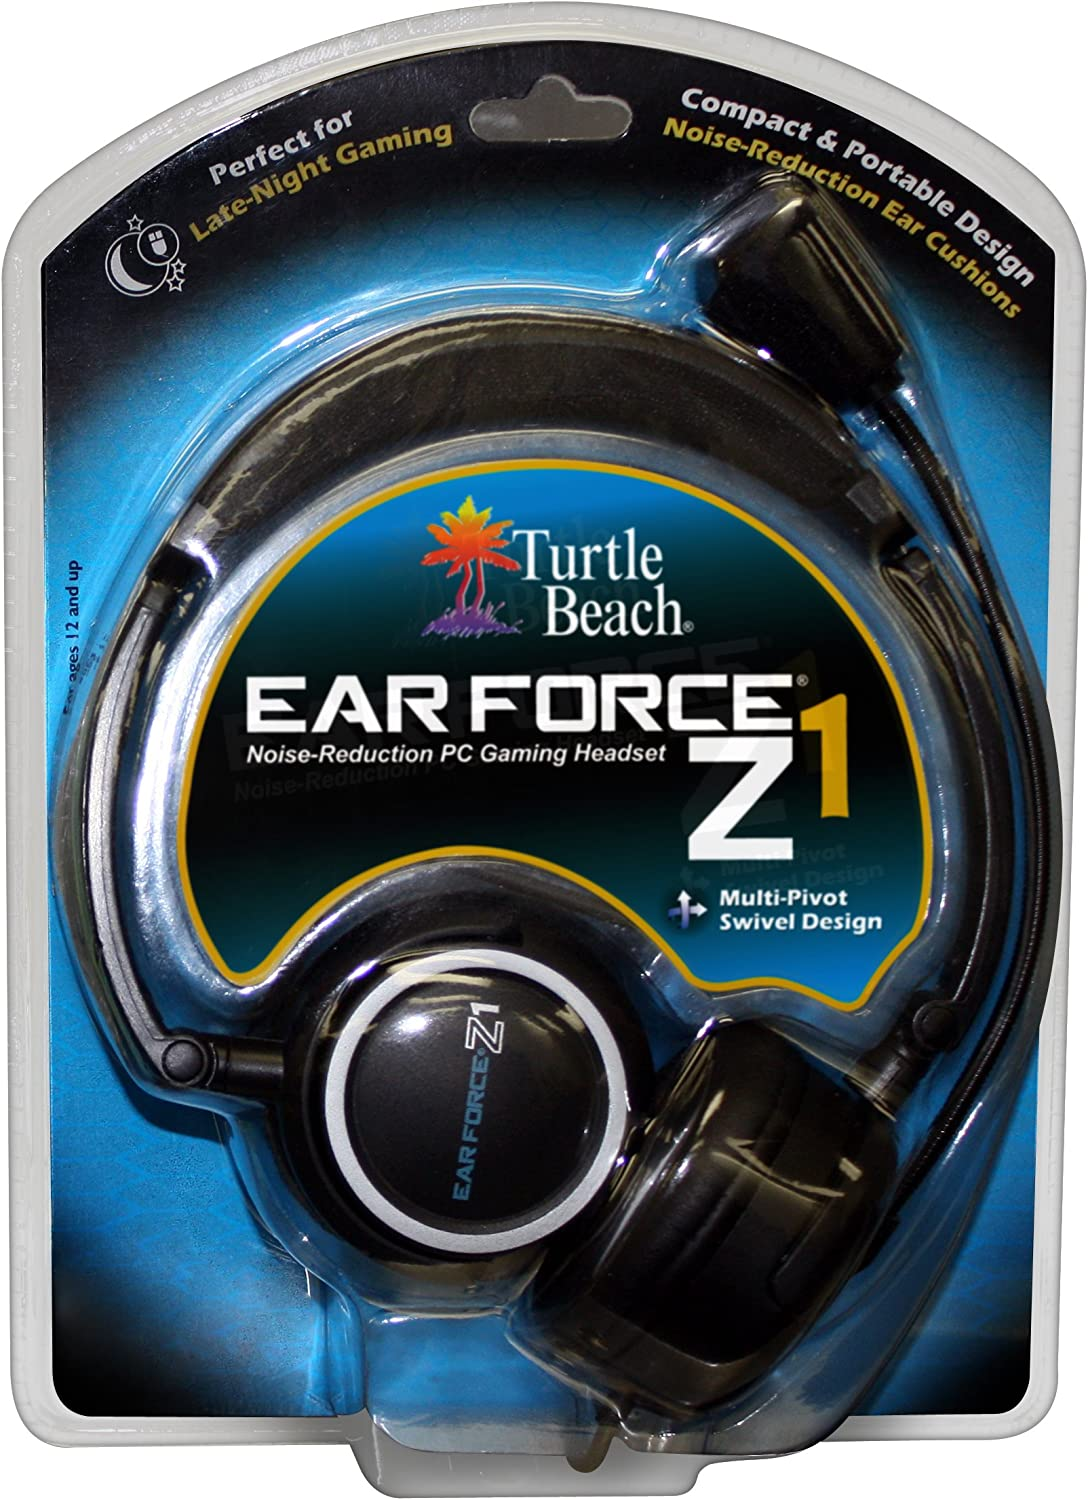 EAR FORCE Z1 DRIVERS DOWNLOAD